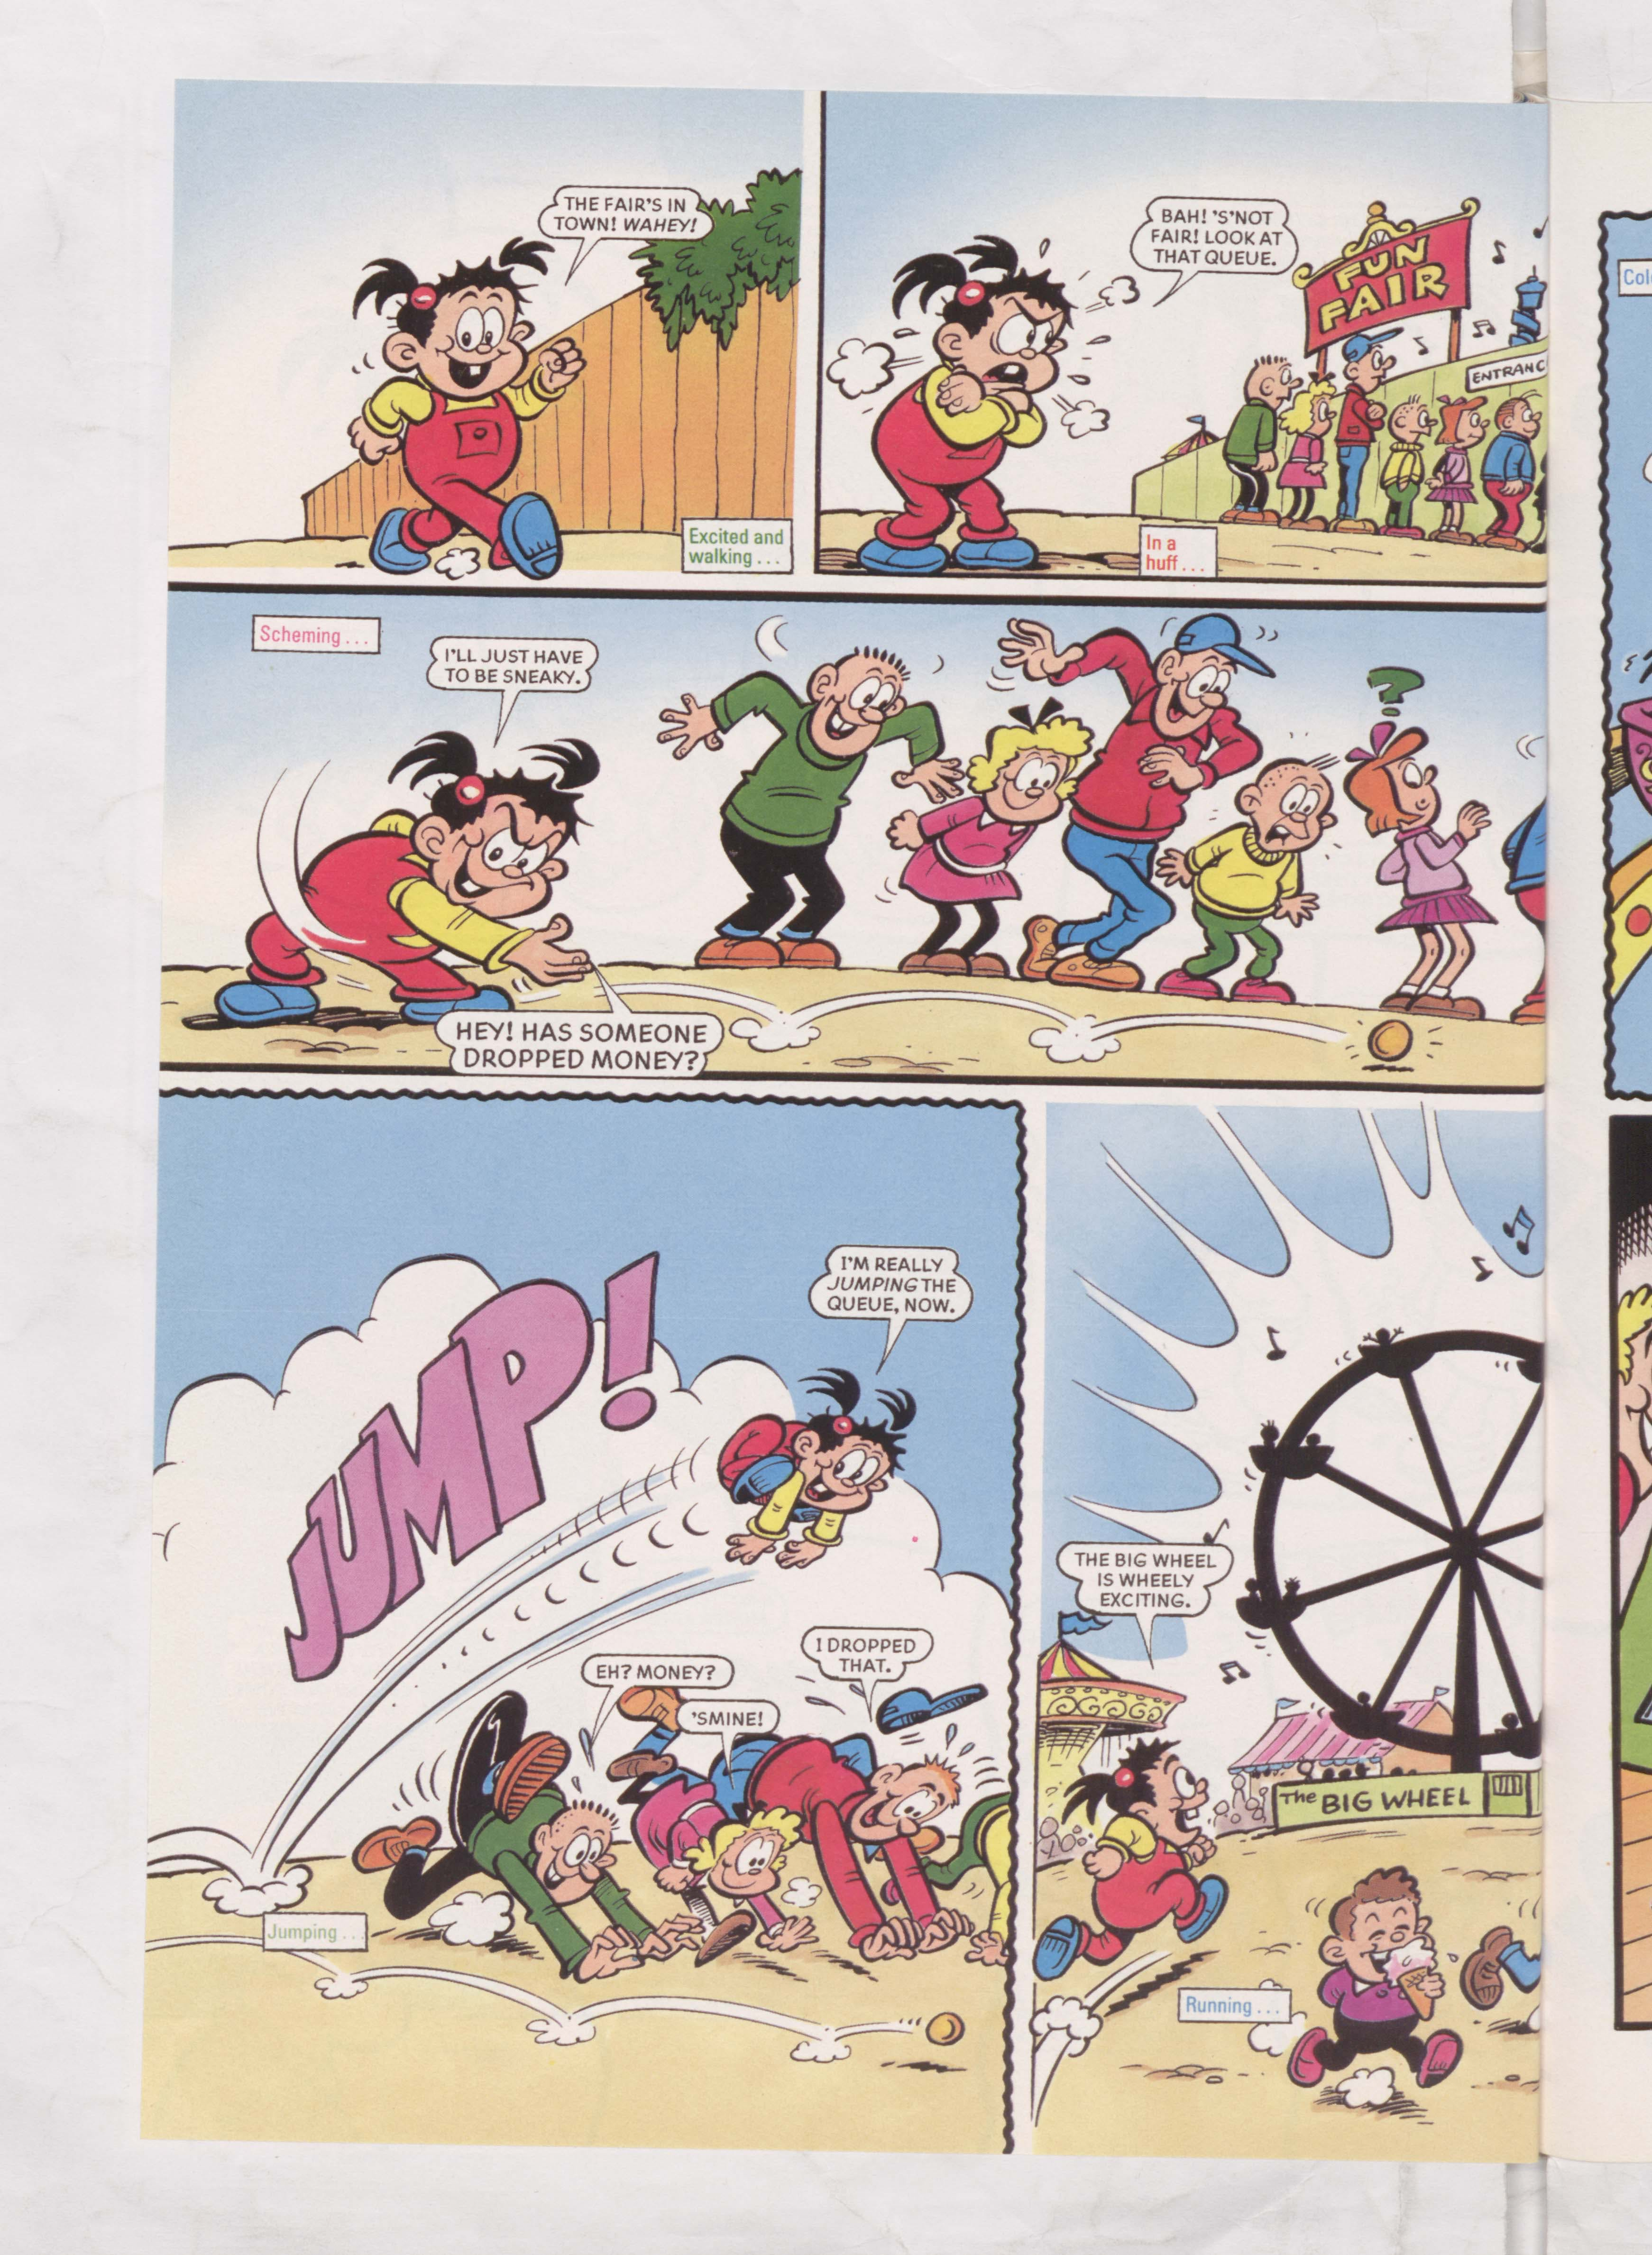 Ivy the Terrible Meets her Maker - Beano Book 2003 Annual